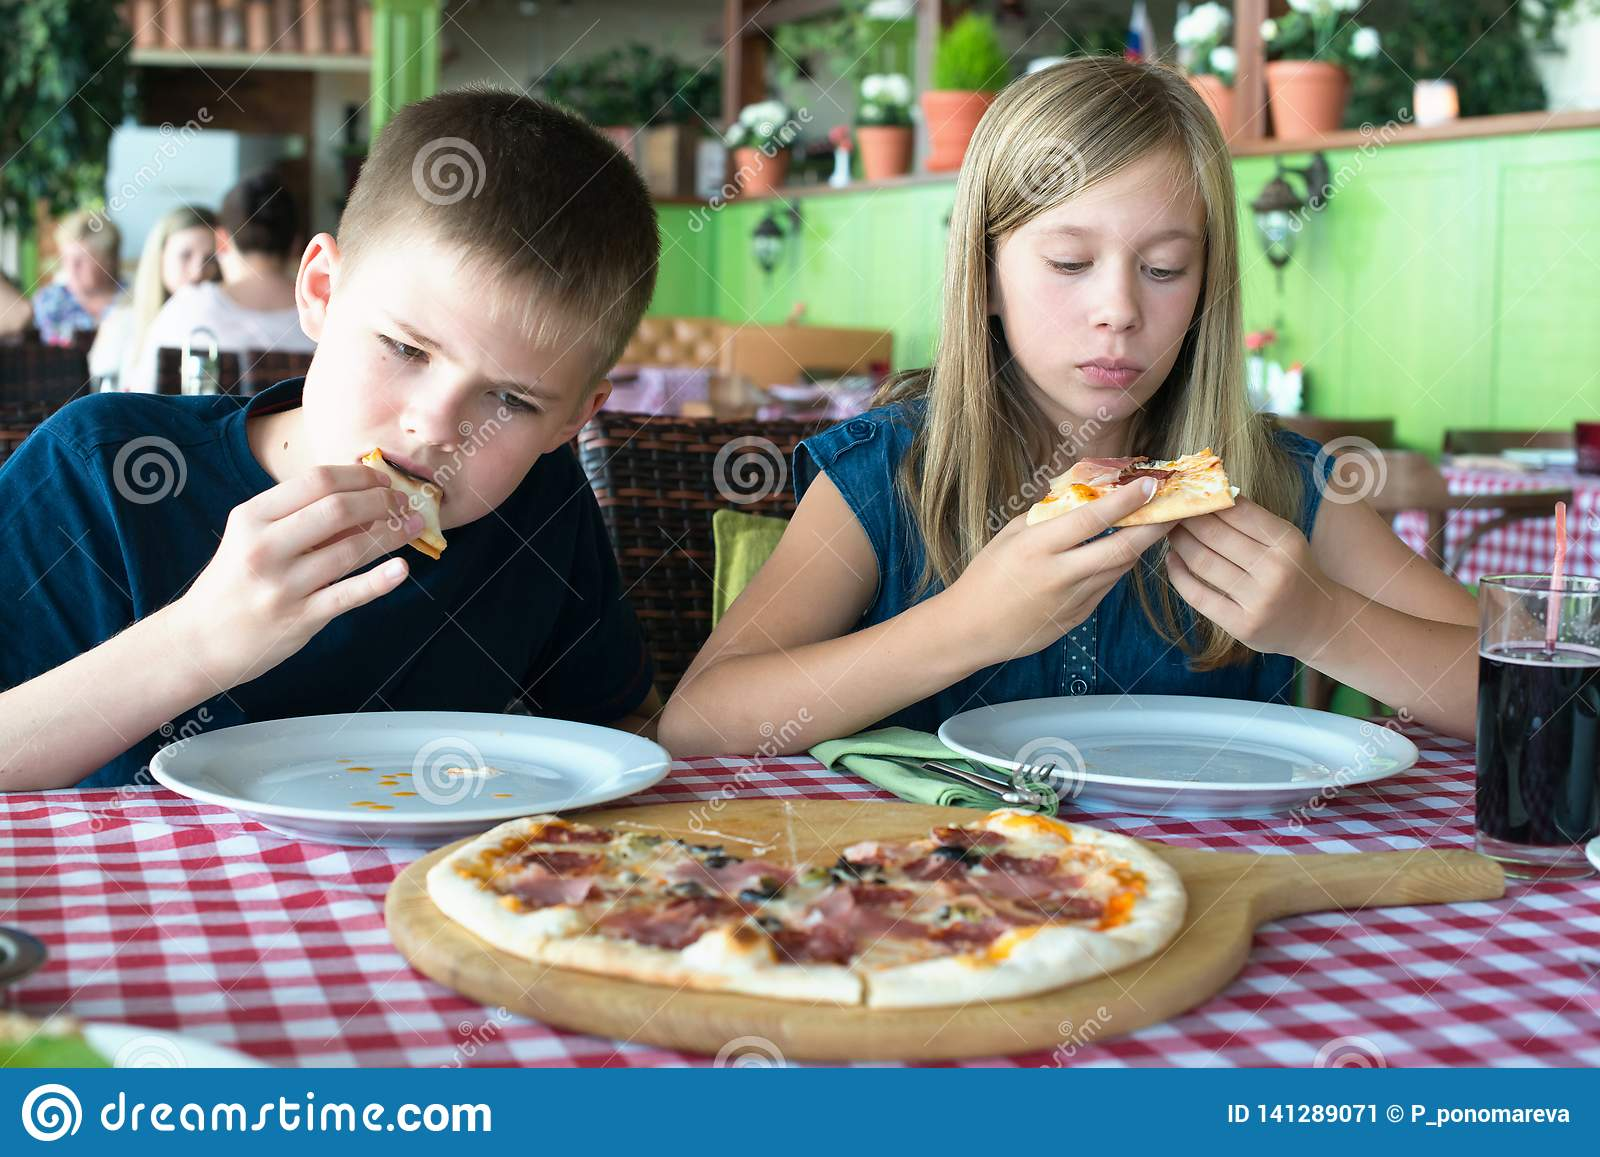 Happy teenagers eating pizza in a cafe. Friends or siblings having fun in restaurant